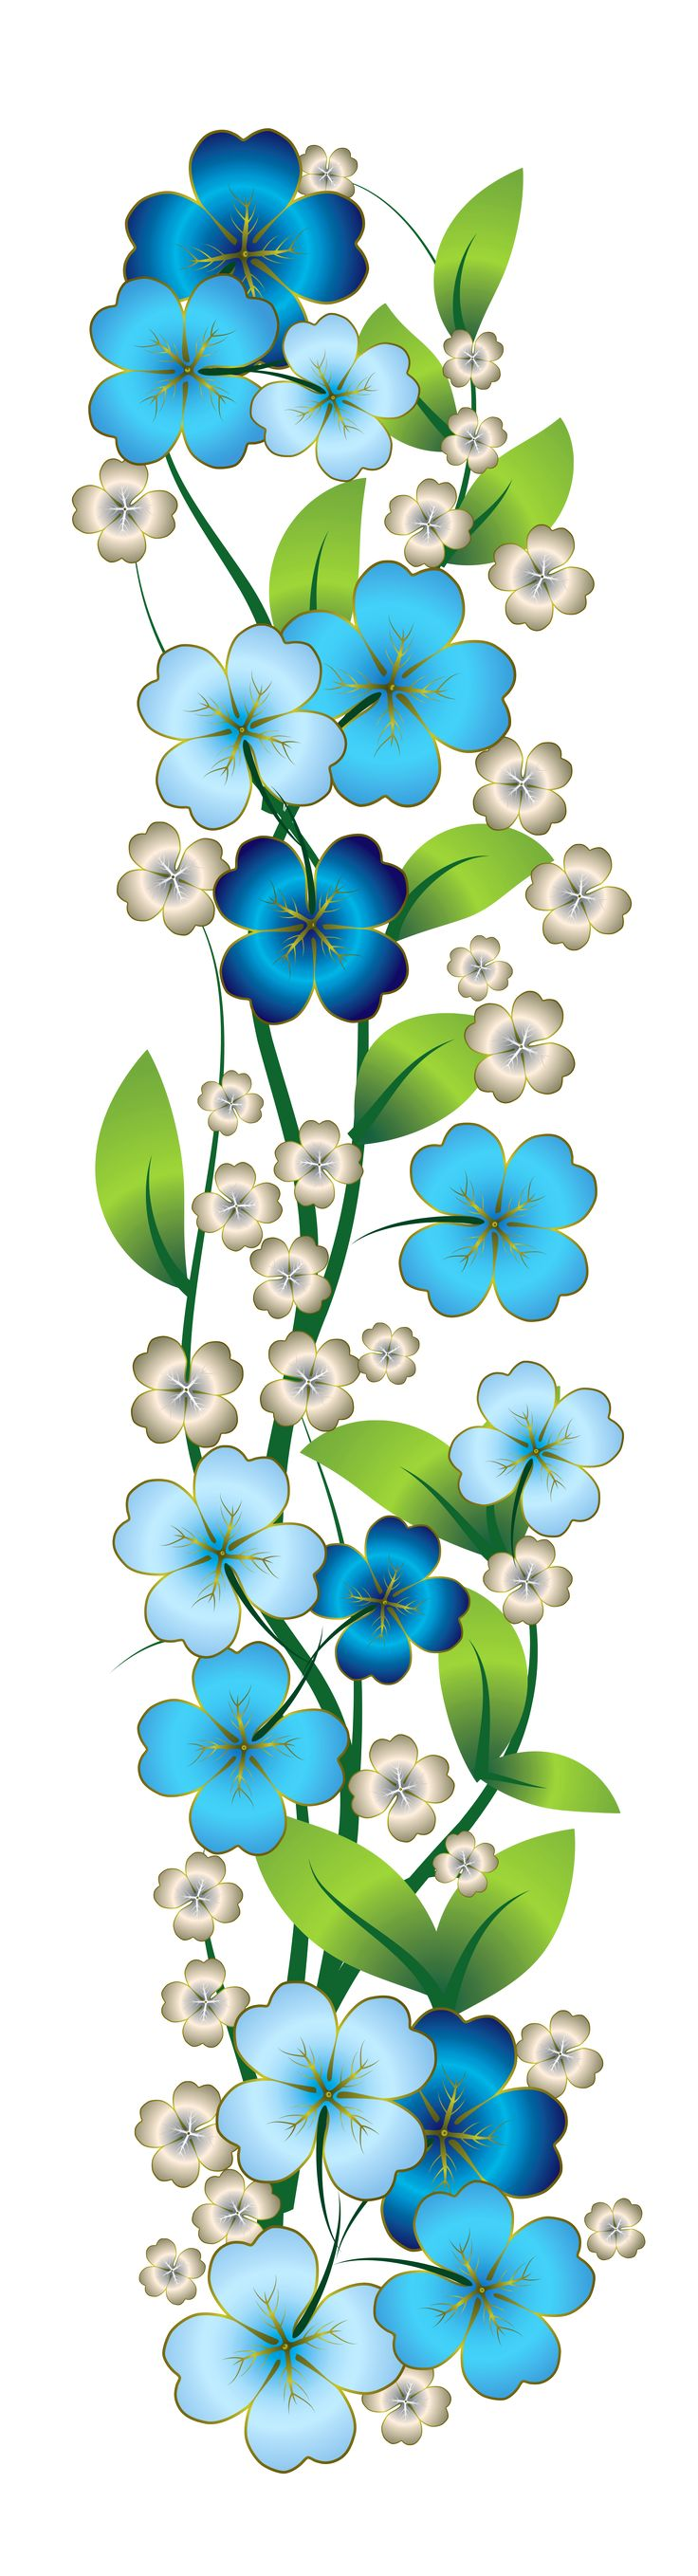 Church flower clipart church flower image church flowers graphic - Blue Flower Decor Png Clipart